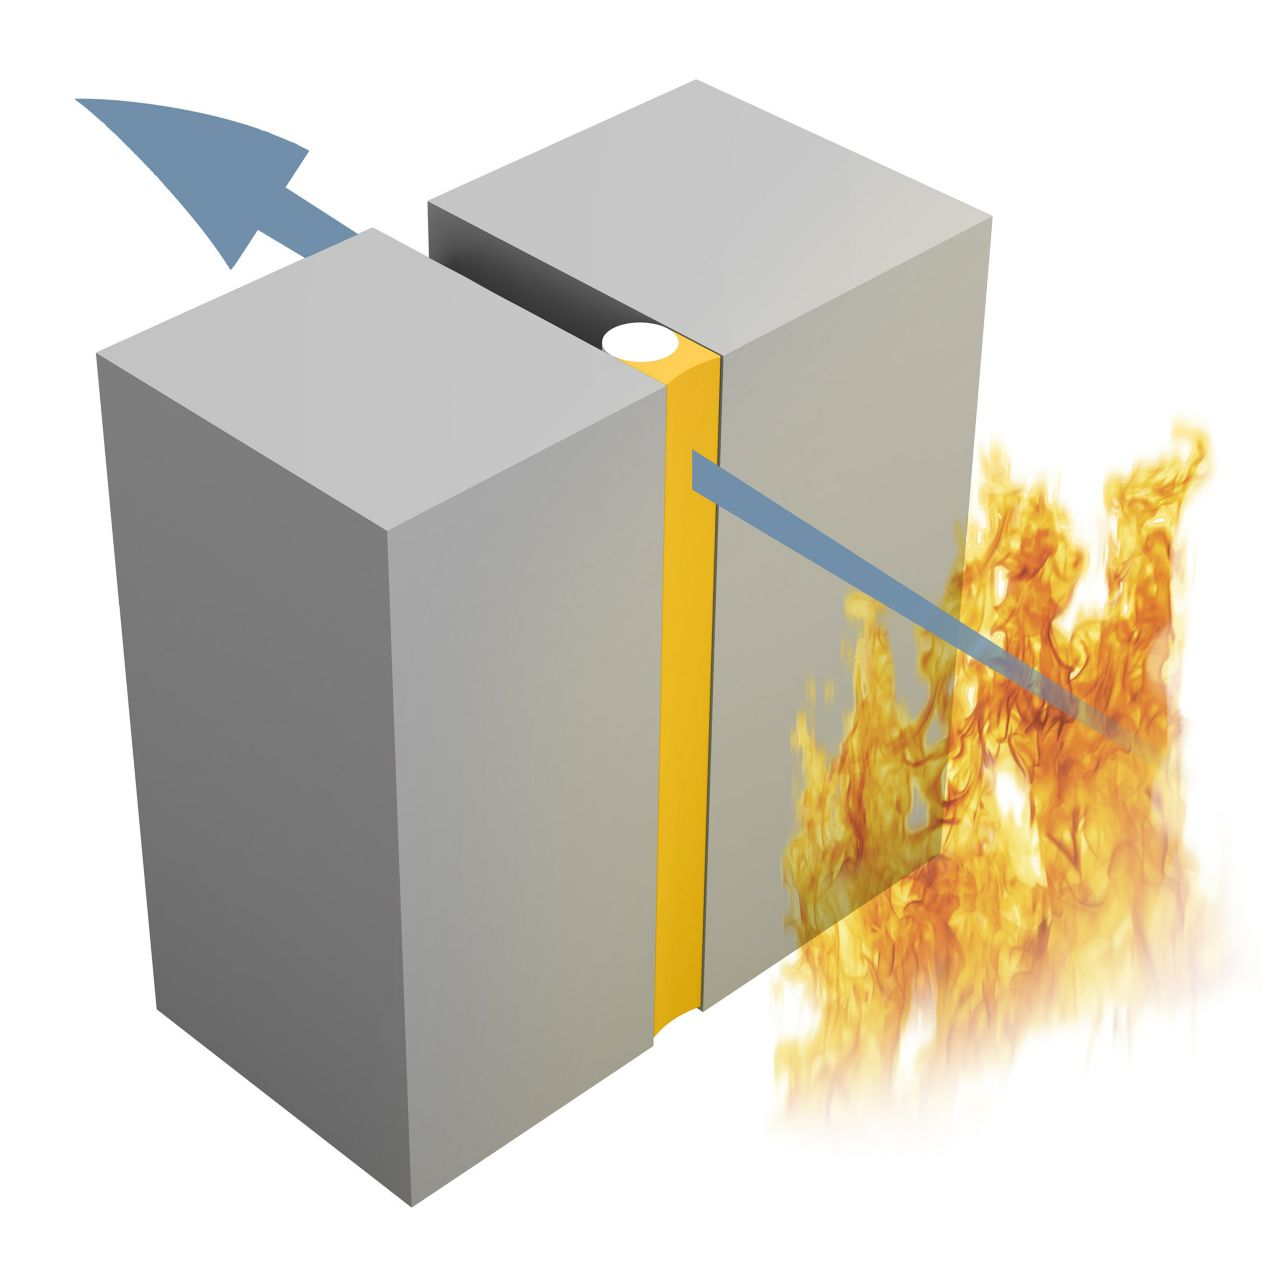 Resistance to Fire Insulation Illustration